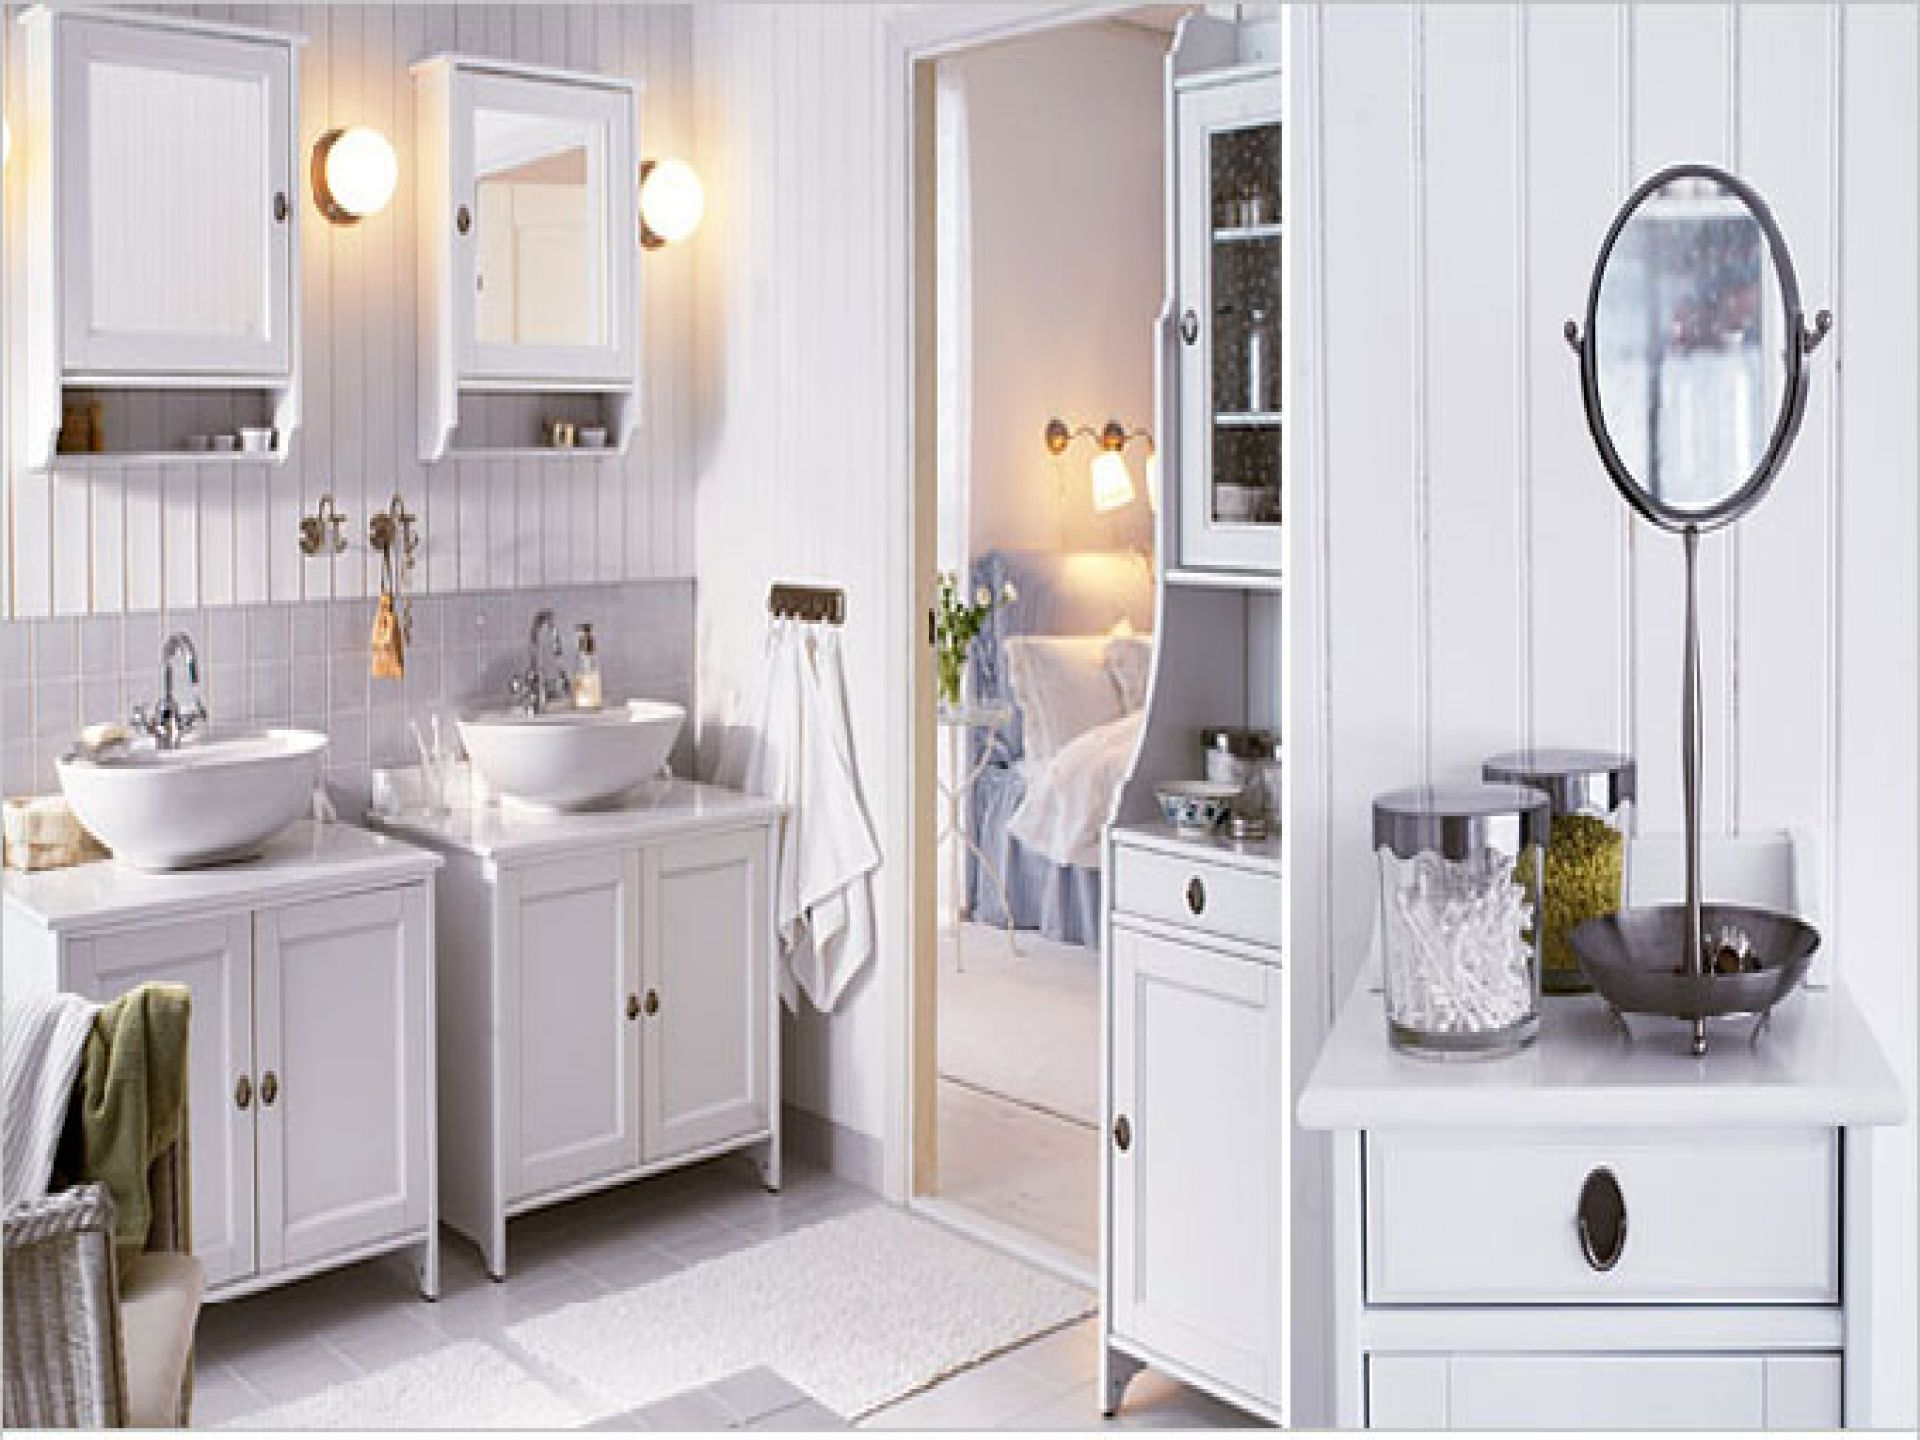 Alluring For Your Home Decor Interior Design with Ikea